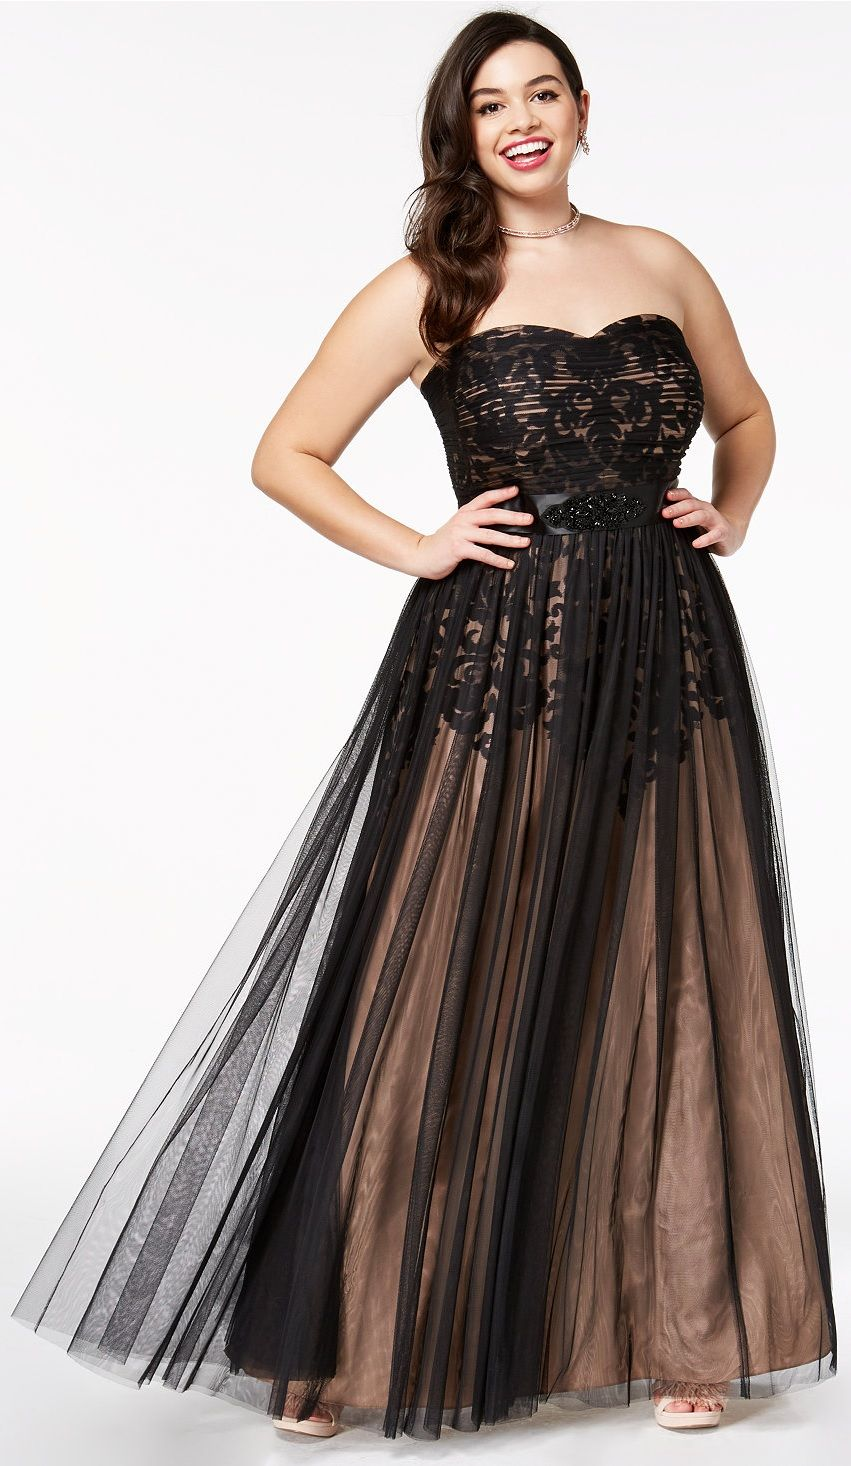 Plus Size Strapless TulleOverlay Ball Gown plussize Plus Size